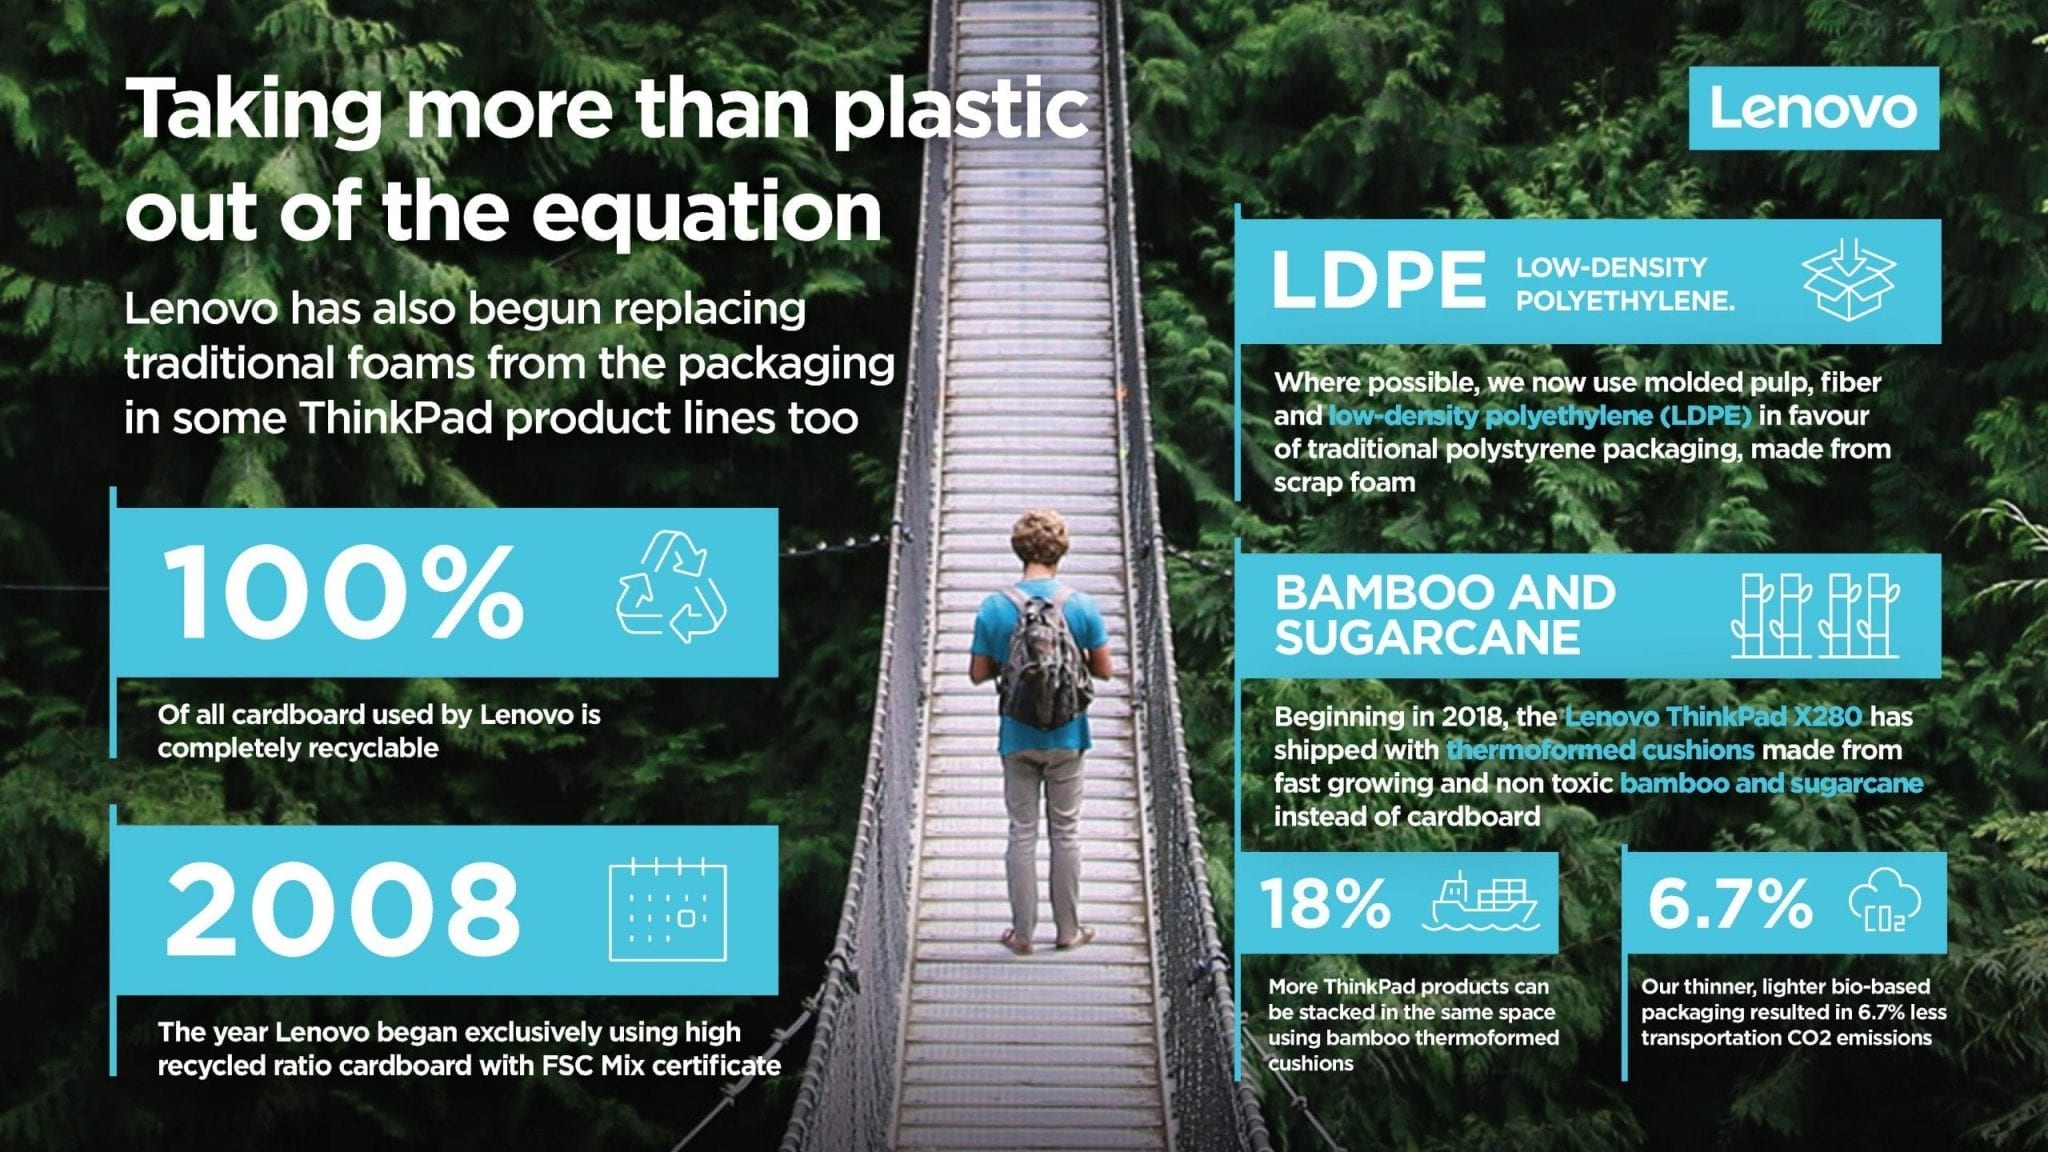 Infographic on Lenovo's efforts to use more sustainable materials